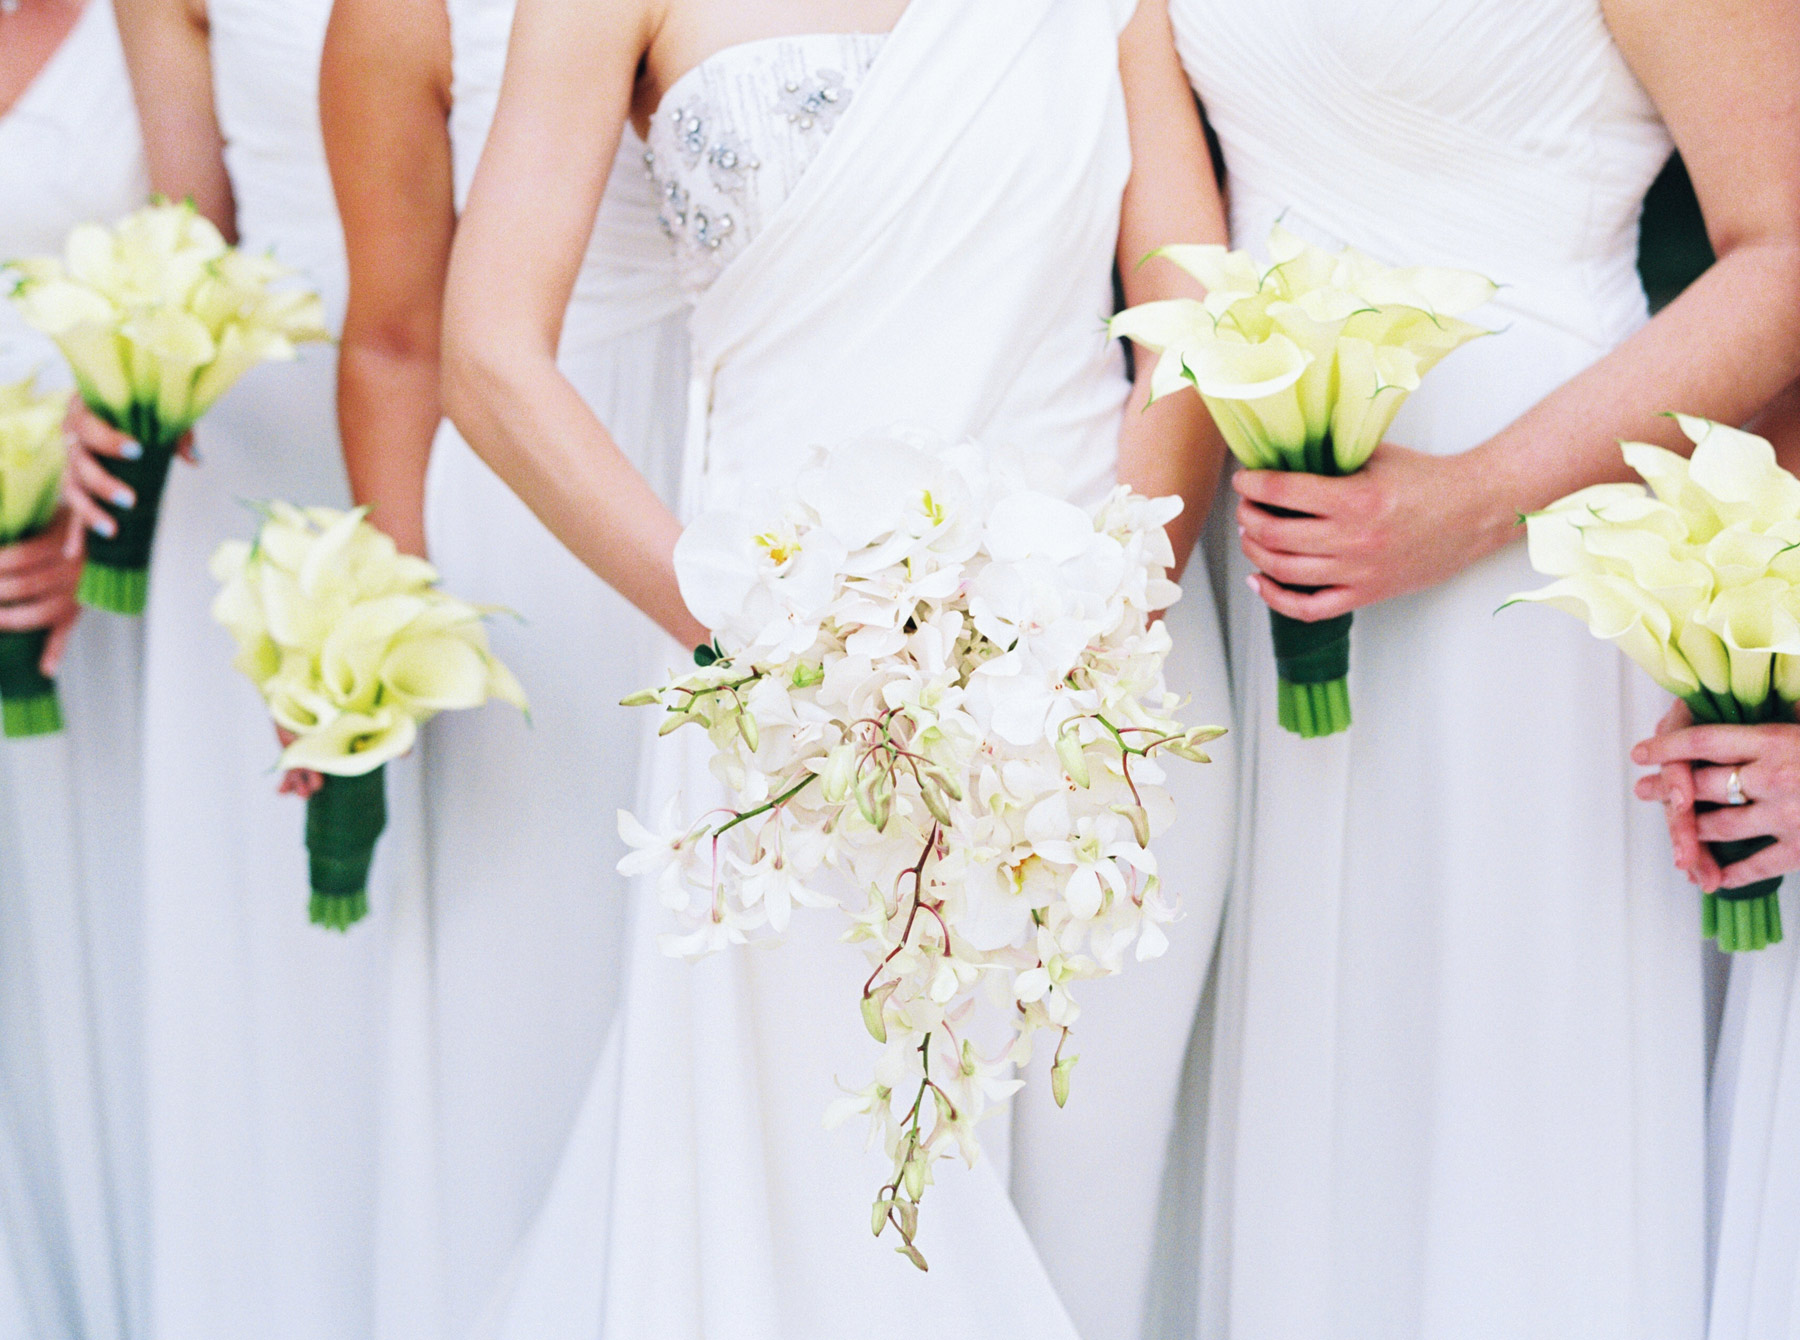 The Difference Between A Matron Of Honor And A Maid Of